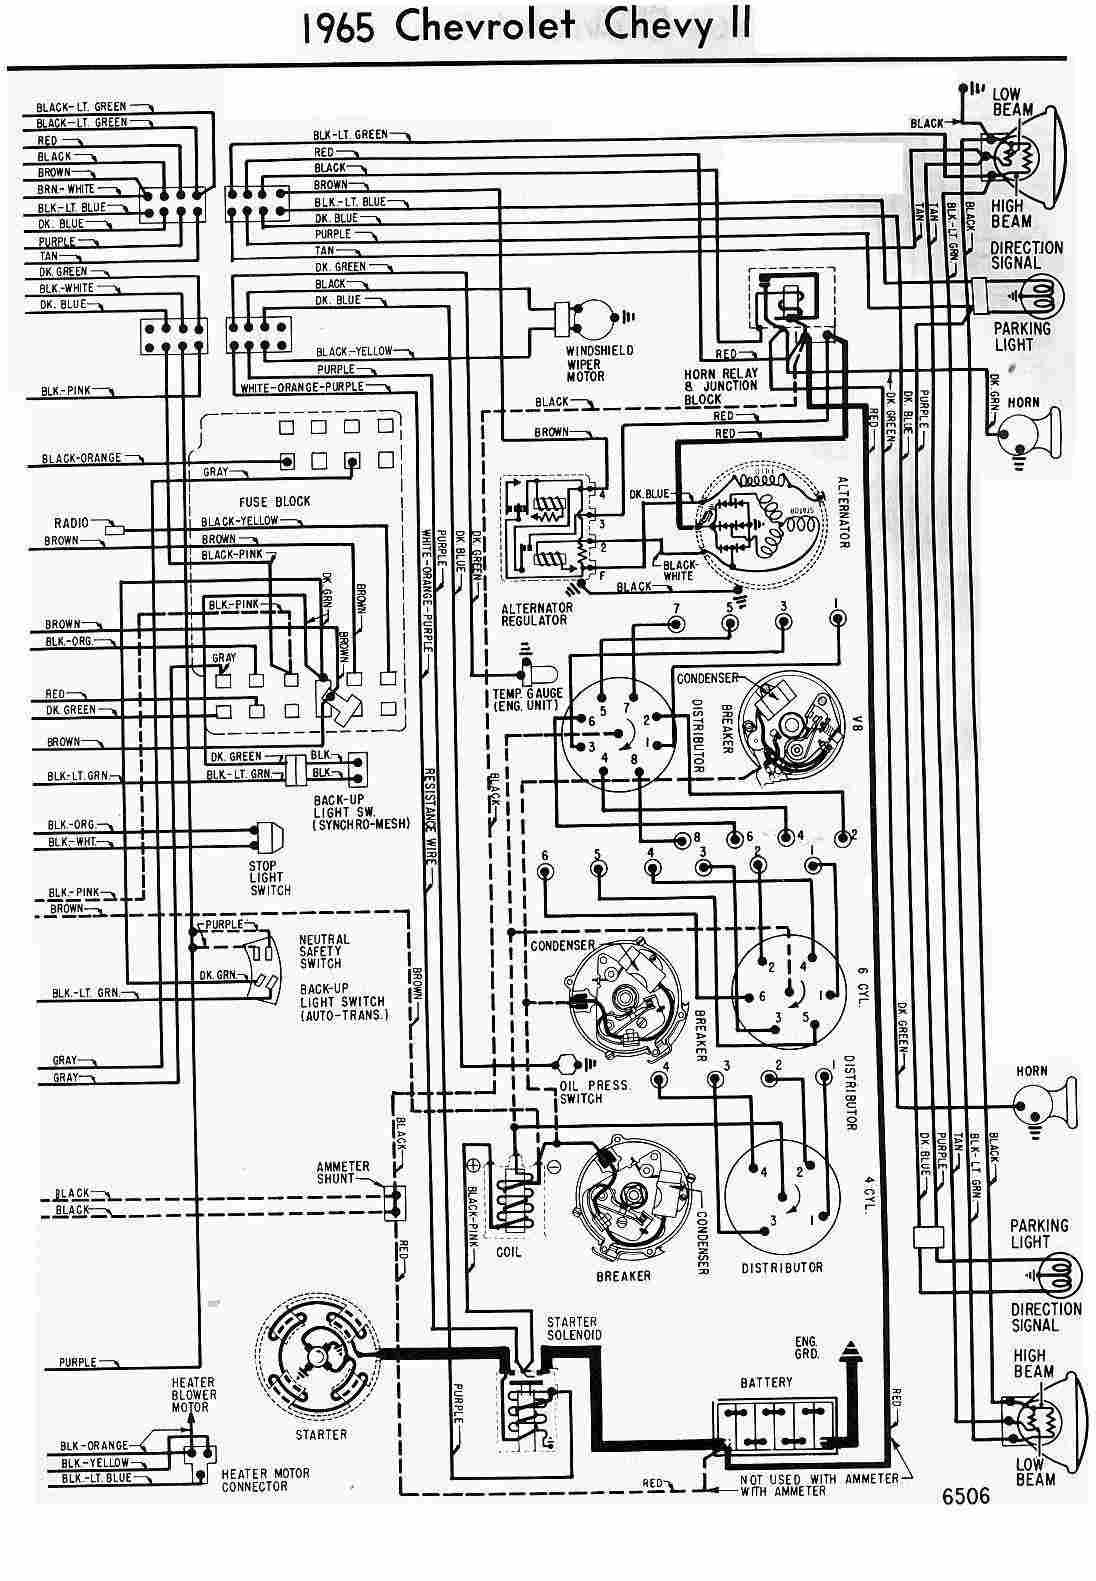 wiring diagram diagram of 1965 chevrolet chevy ii?t=1508393184 chevrolet car manuals, wiring diagrams pdf & fault codes chevrolet wiring diagrams free download at fashall.co